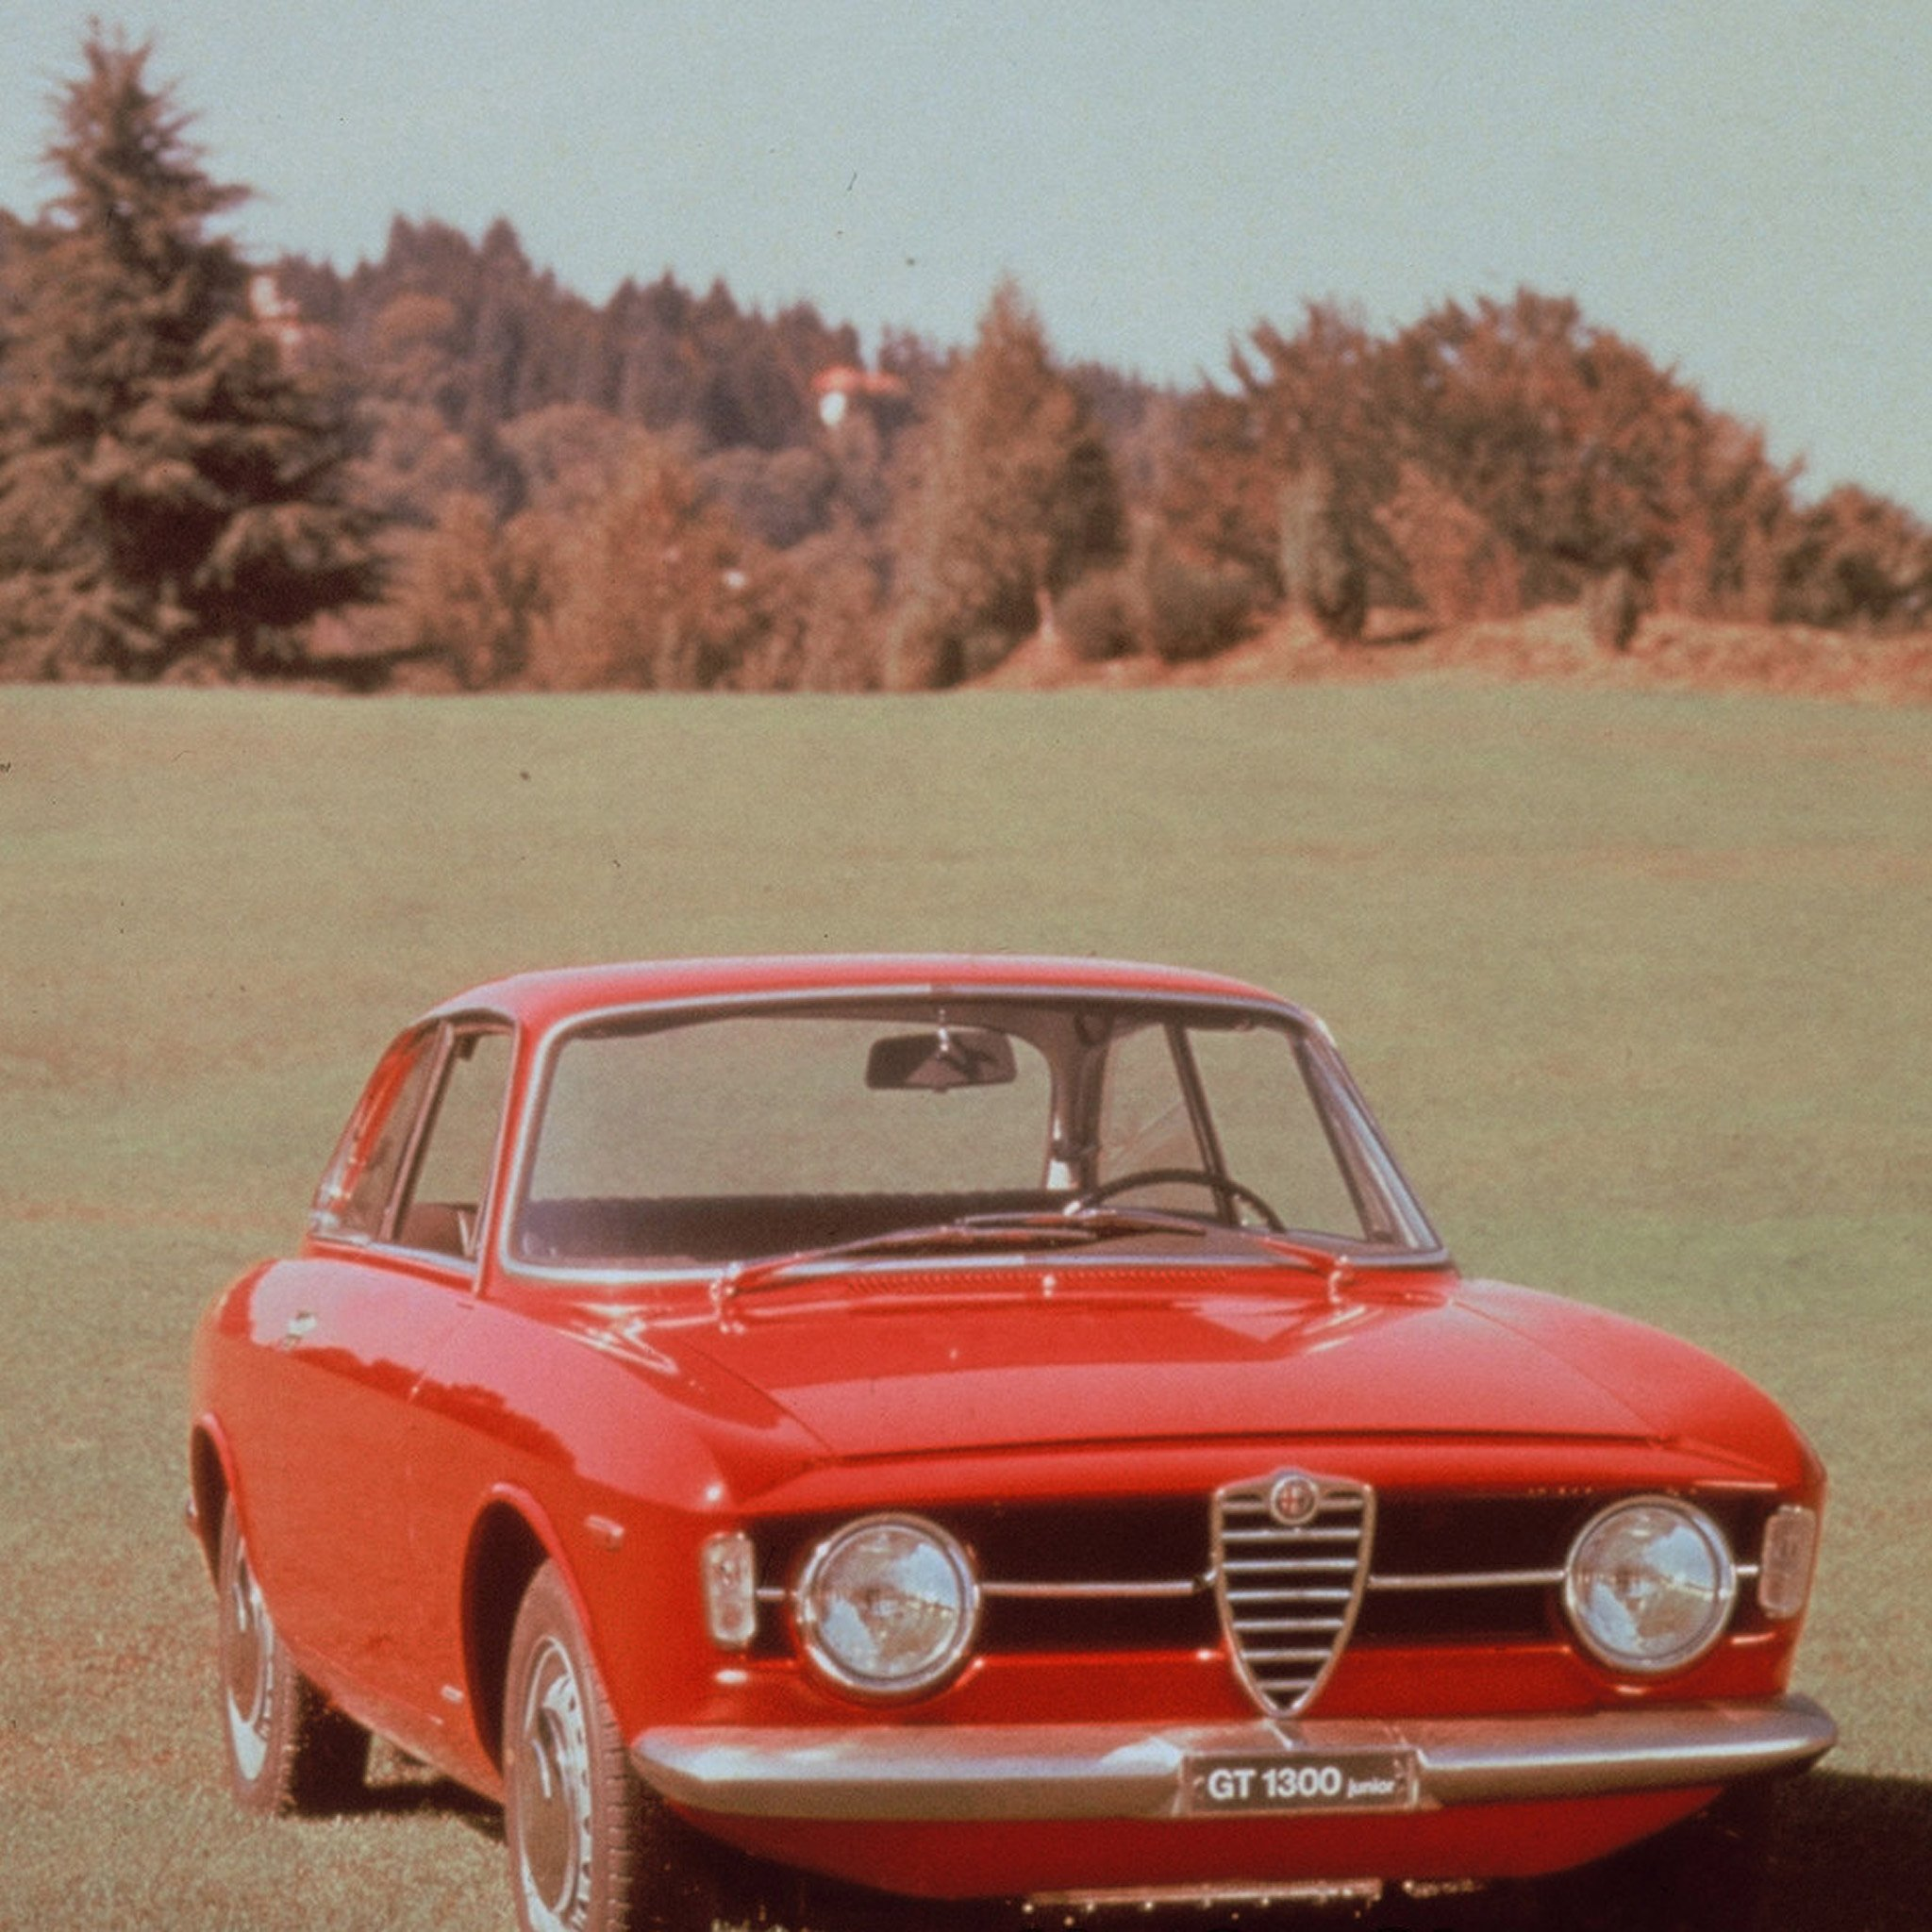 1966 Alfa Romeo Giulia Coupe 1300 GT Junior photo - 2